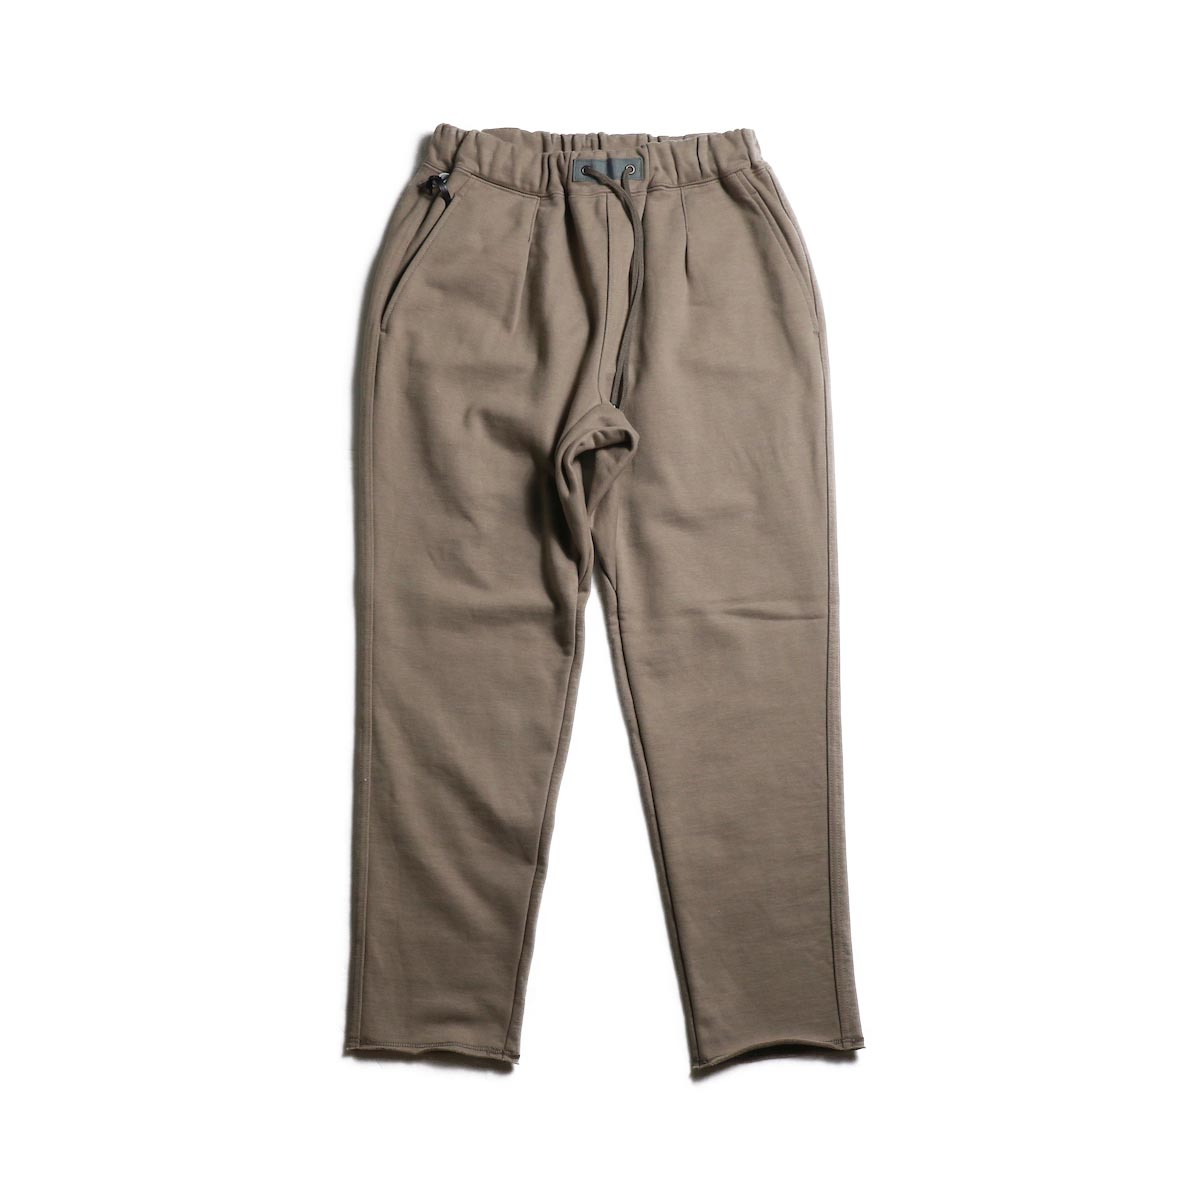 CURLY / BROMLEY EZ TROUSERS (Smoked Beig)